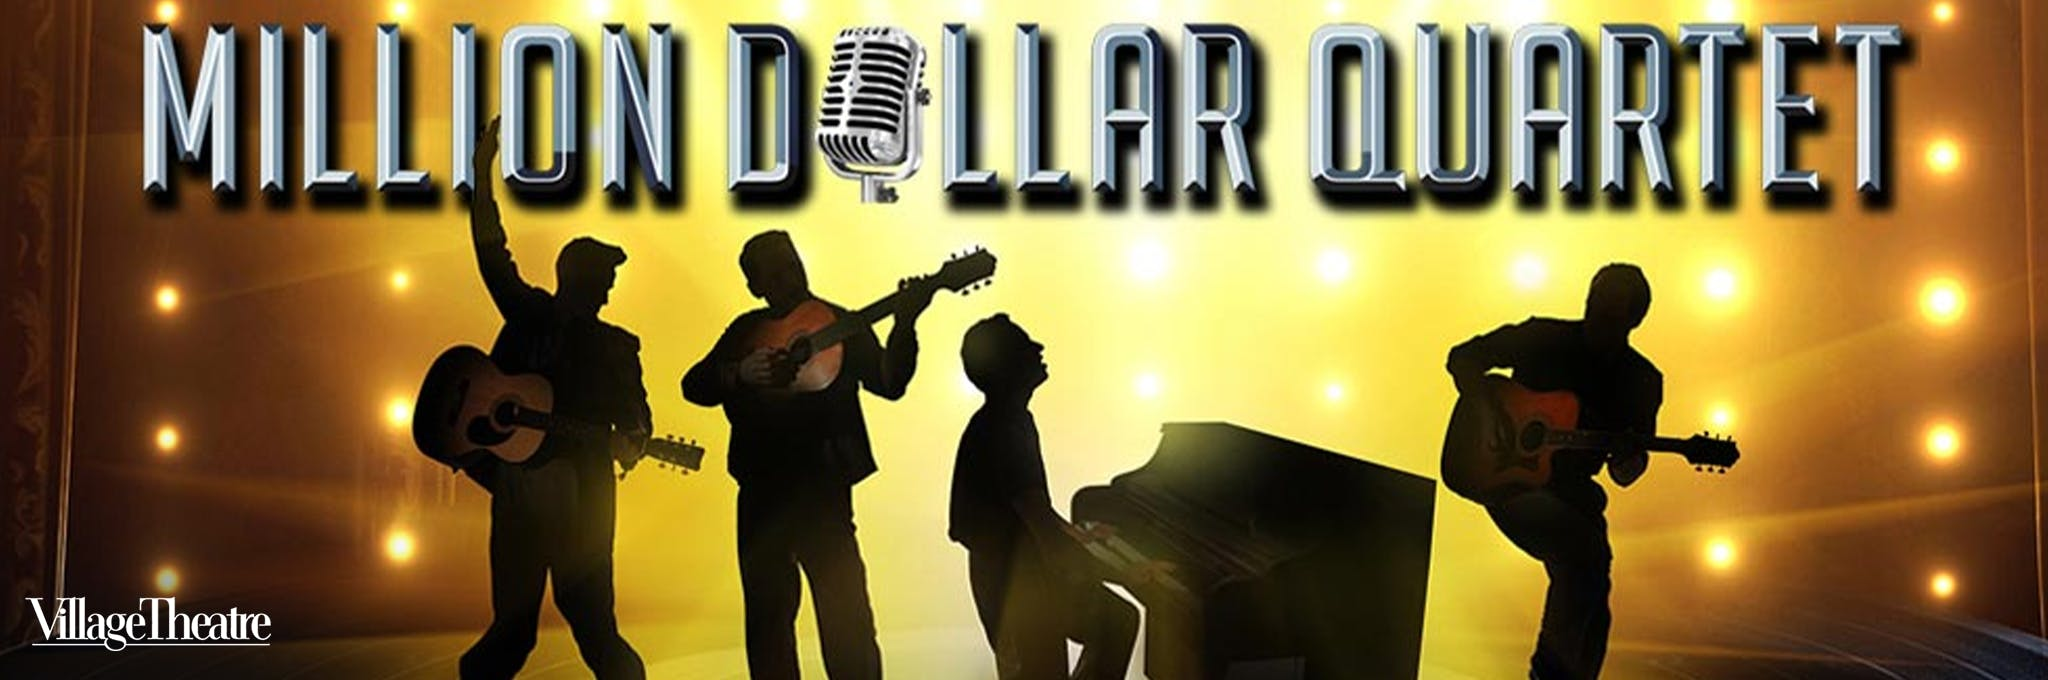 Million Dollar Quartet - Issaquah Logo